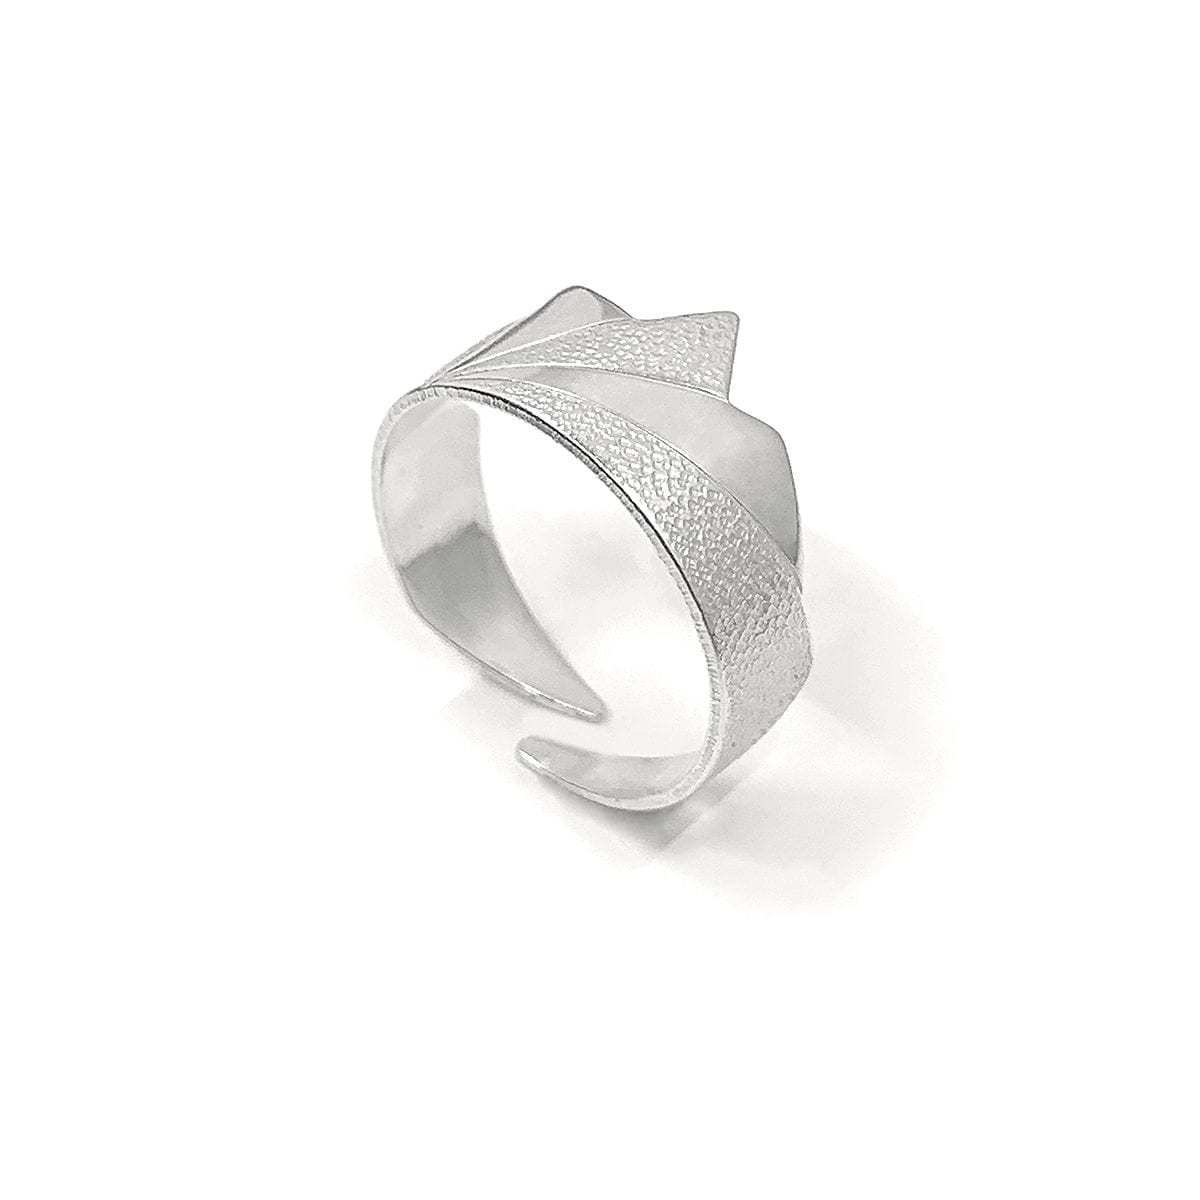 RING002_A